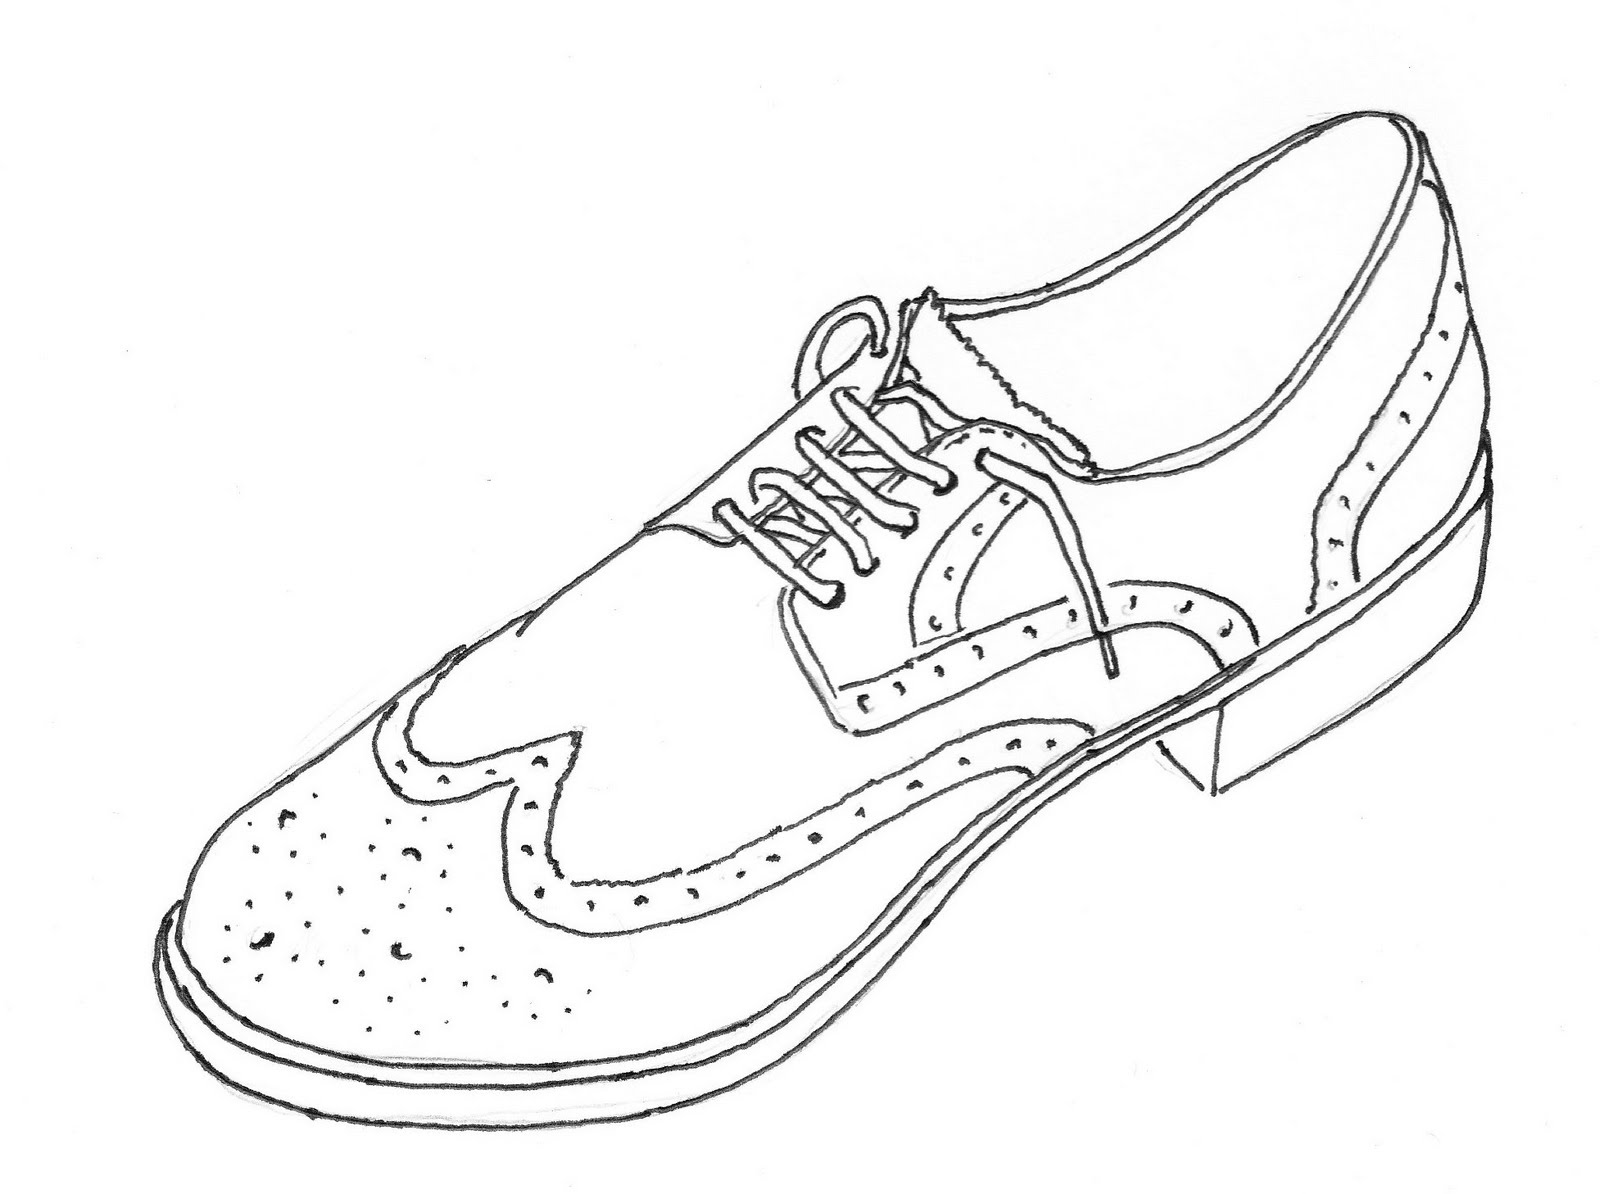 Drawn shoe sketched UP Page Pen Tes Shoes: